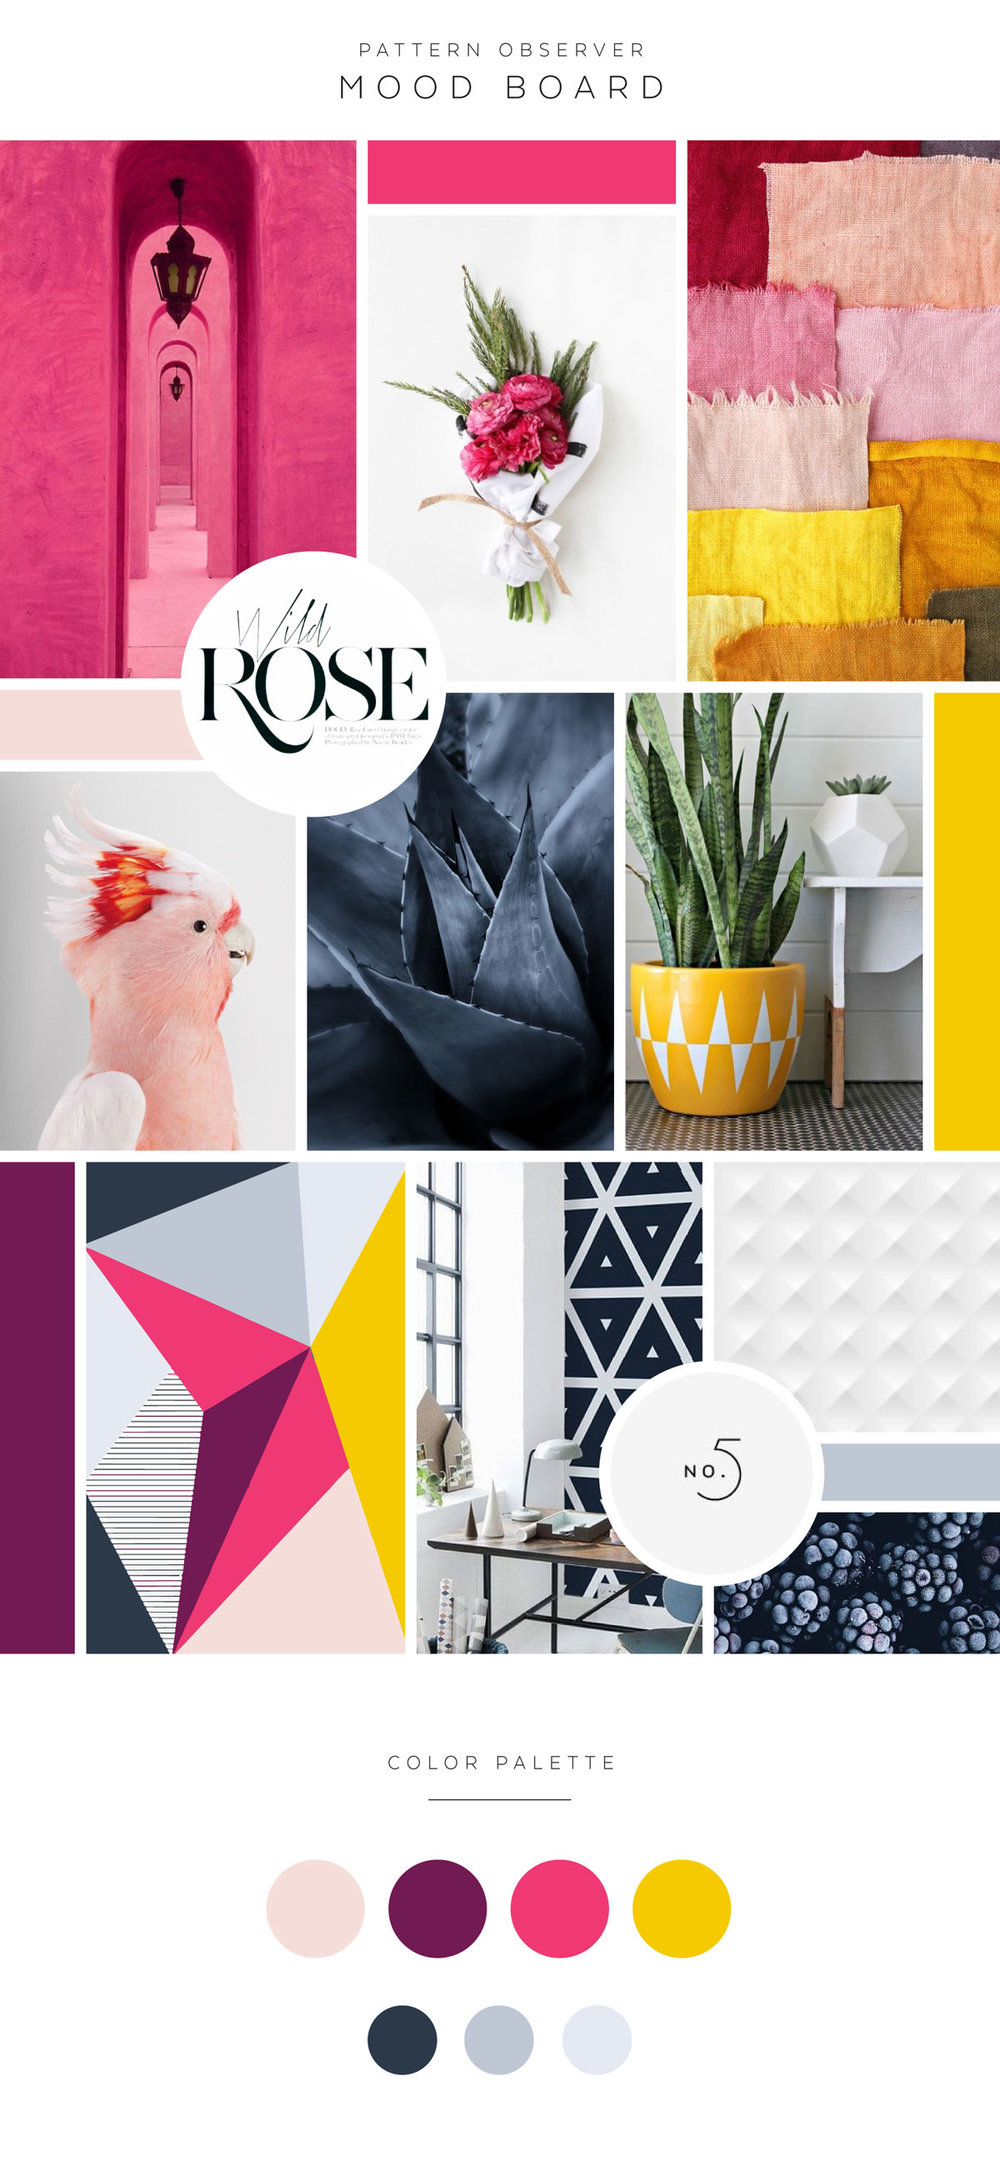 Mood Board for Pattern Observer Designer Feminine Modern Logo Design by Dapper Fox